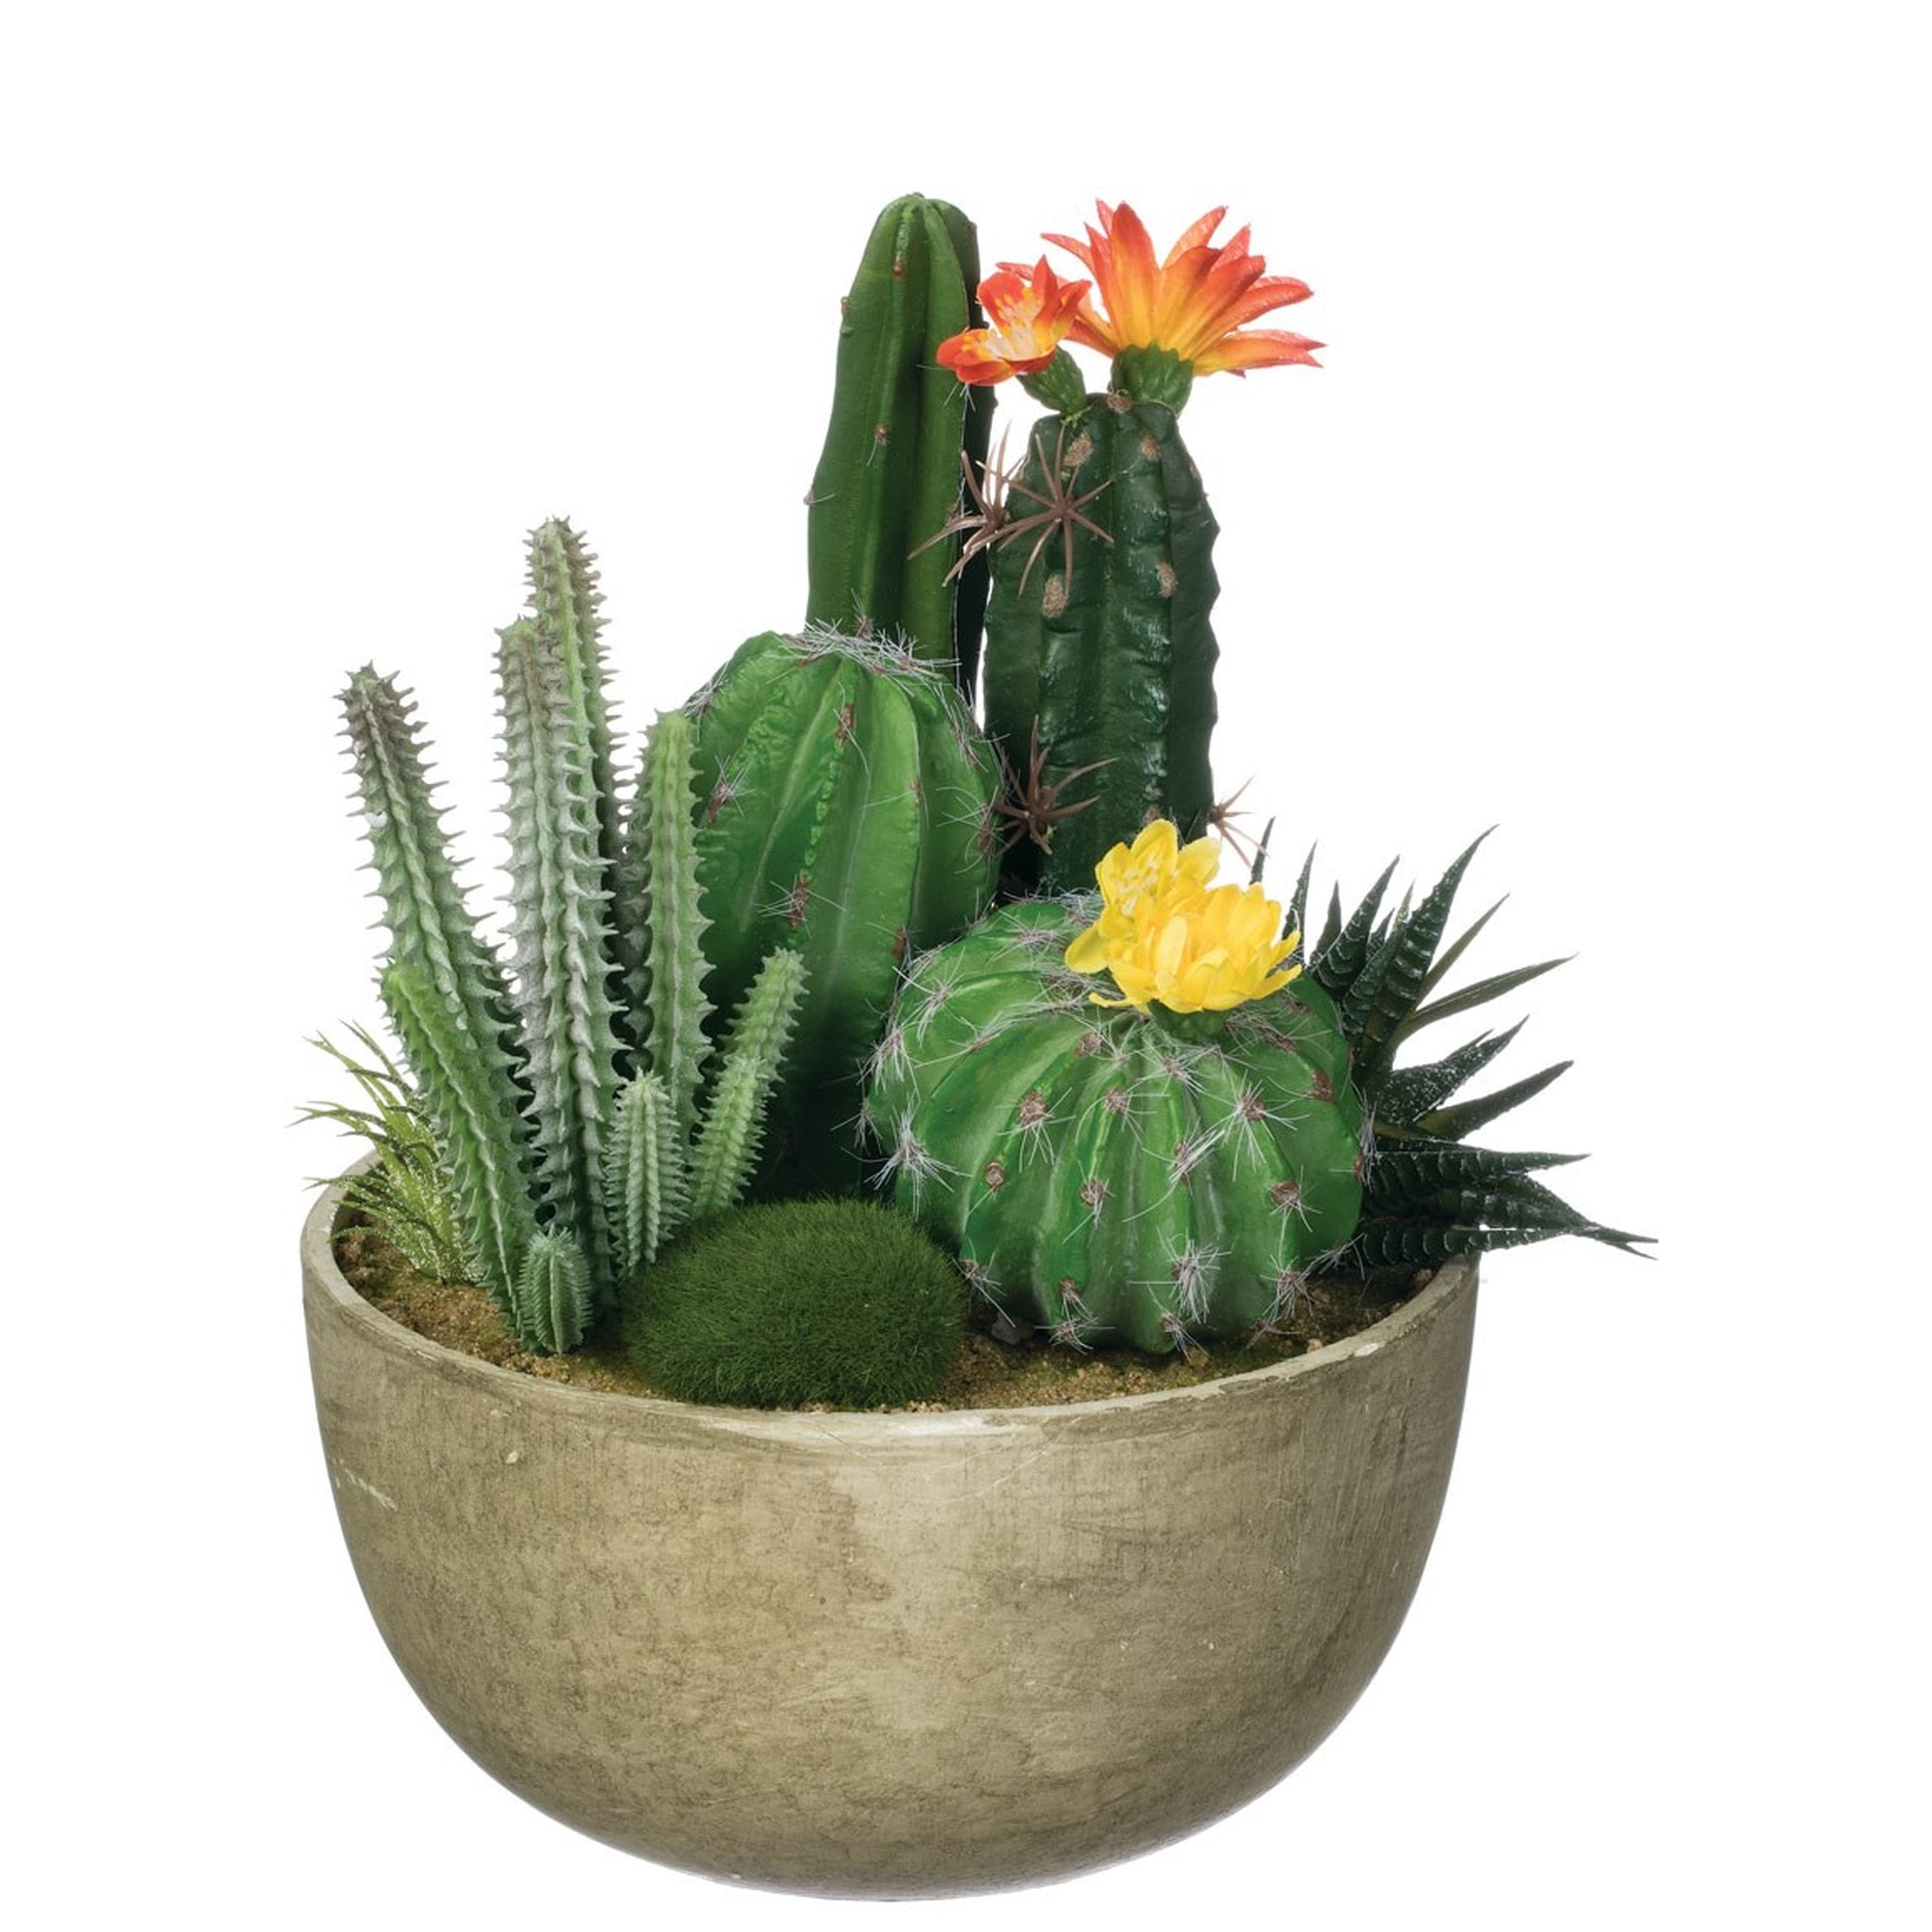 Potted Cacti Garden, Amanda's House Of Elegance  ($56.95)